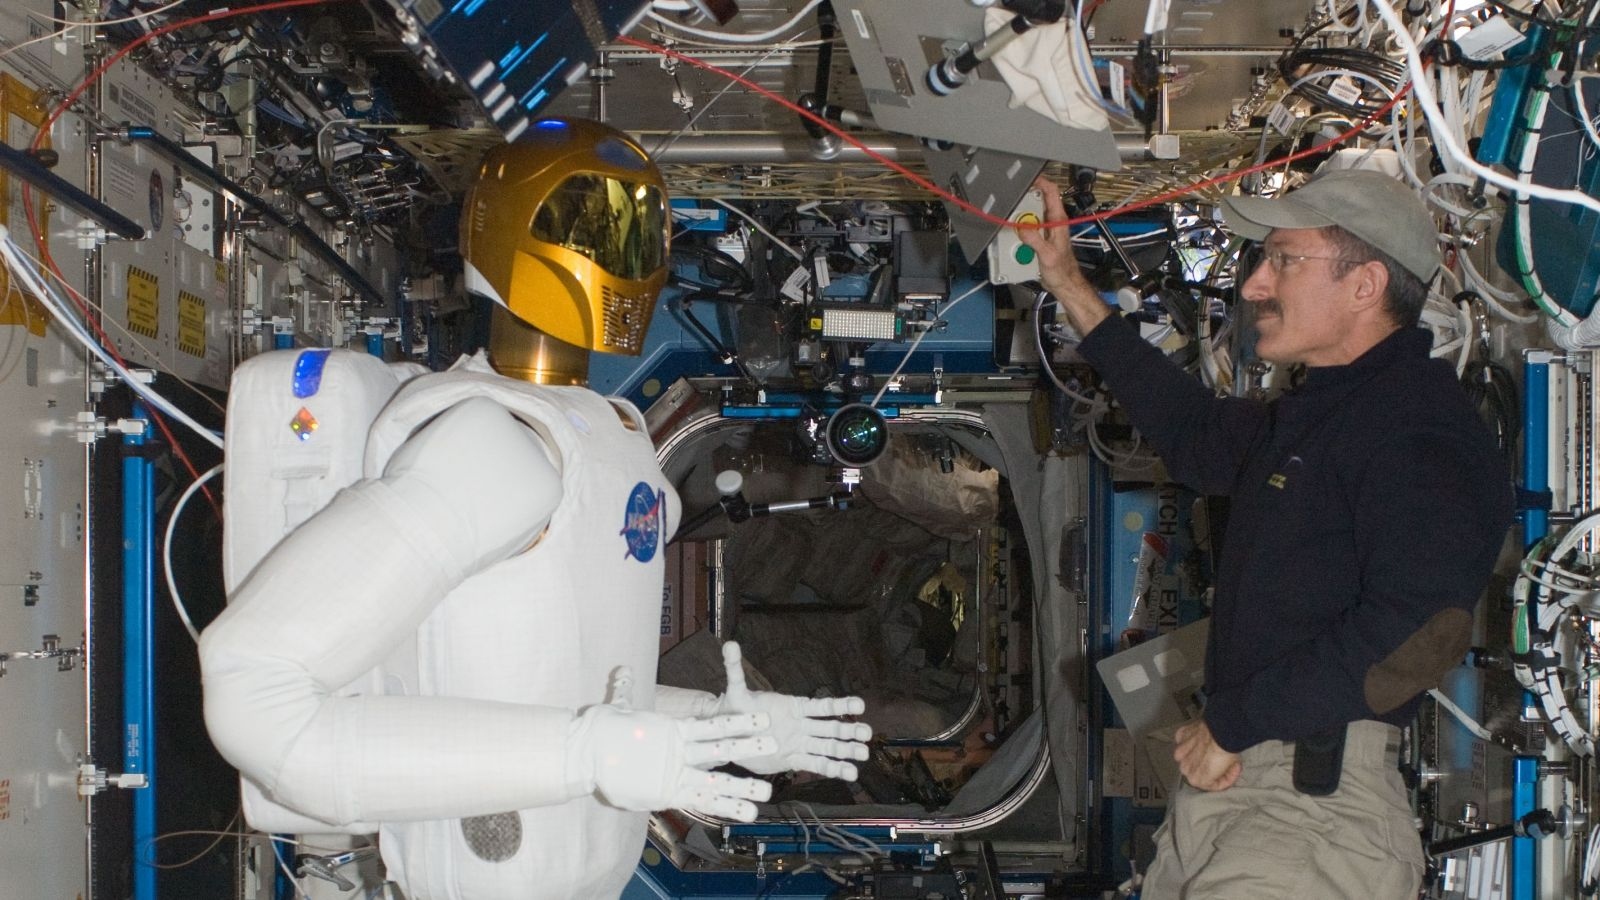 Expedition 30 commander Dan Burbank checks out Robonaut2 in February 2012. Photo Credit: NASA